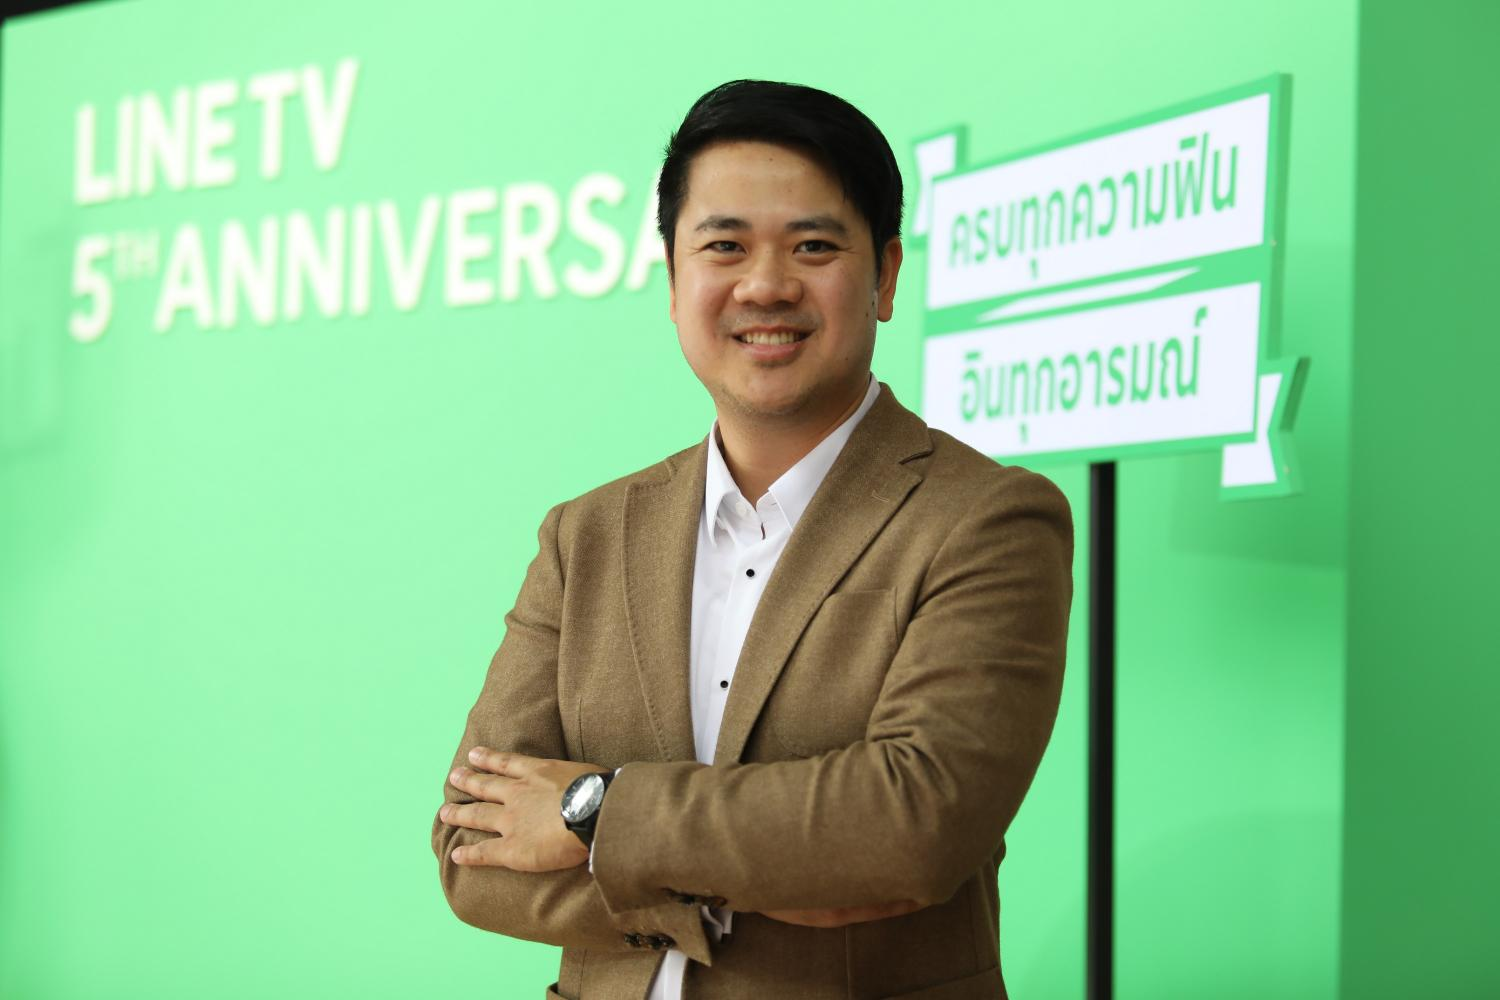 Mr Kanop says Line TV recently offered prime-time packages for ad sales to brands.